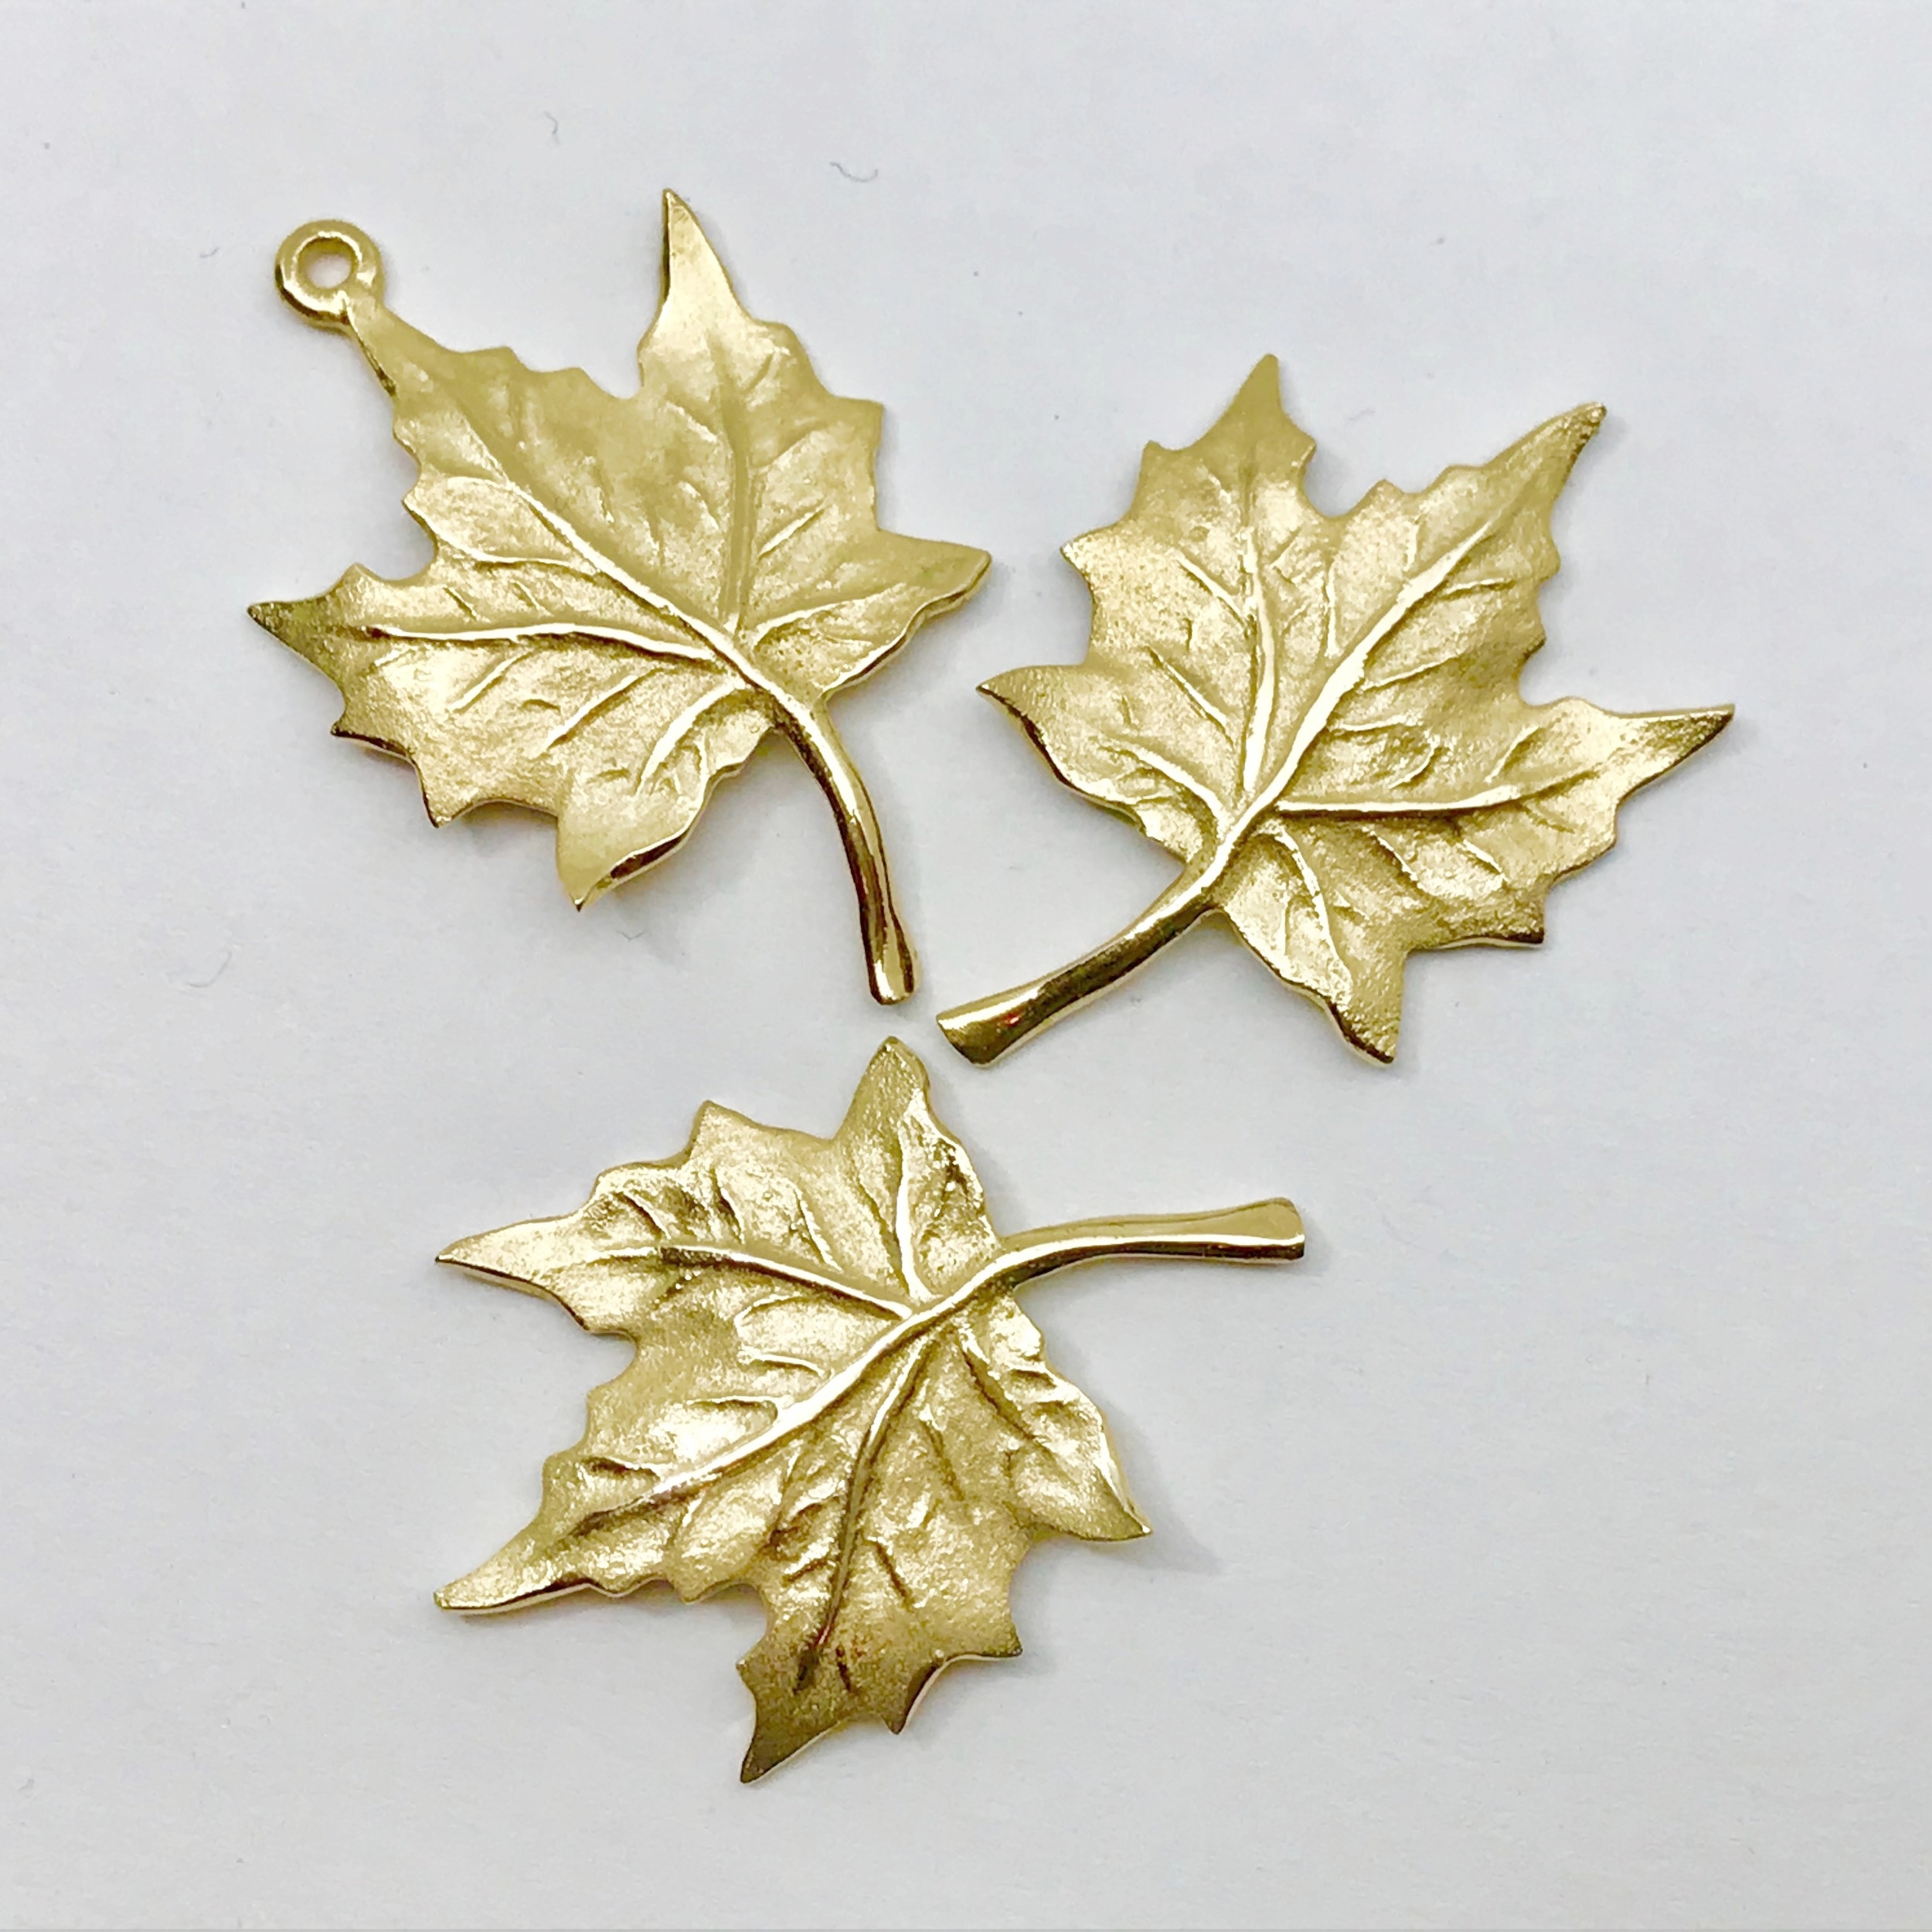 NEW IN STOCK <br><b>Maple Leaf Stick Pin</b><br>$ 570<br>14K Yellow Gold<br>Designer Series